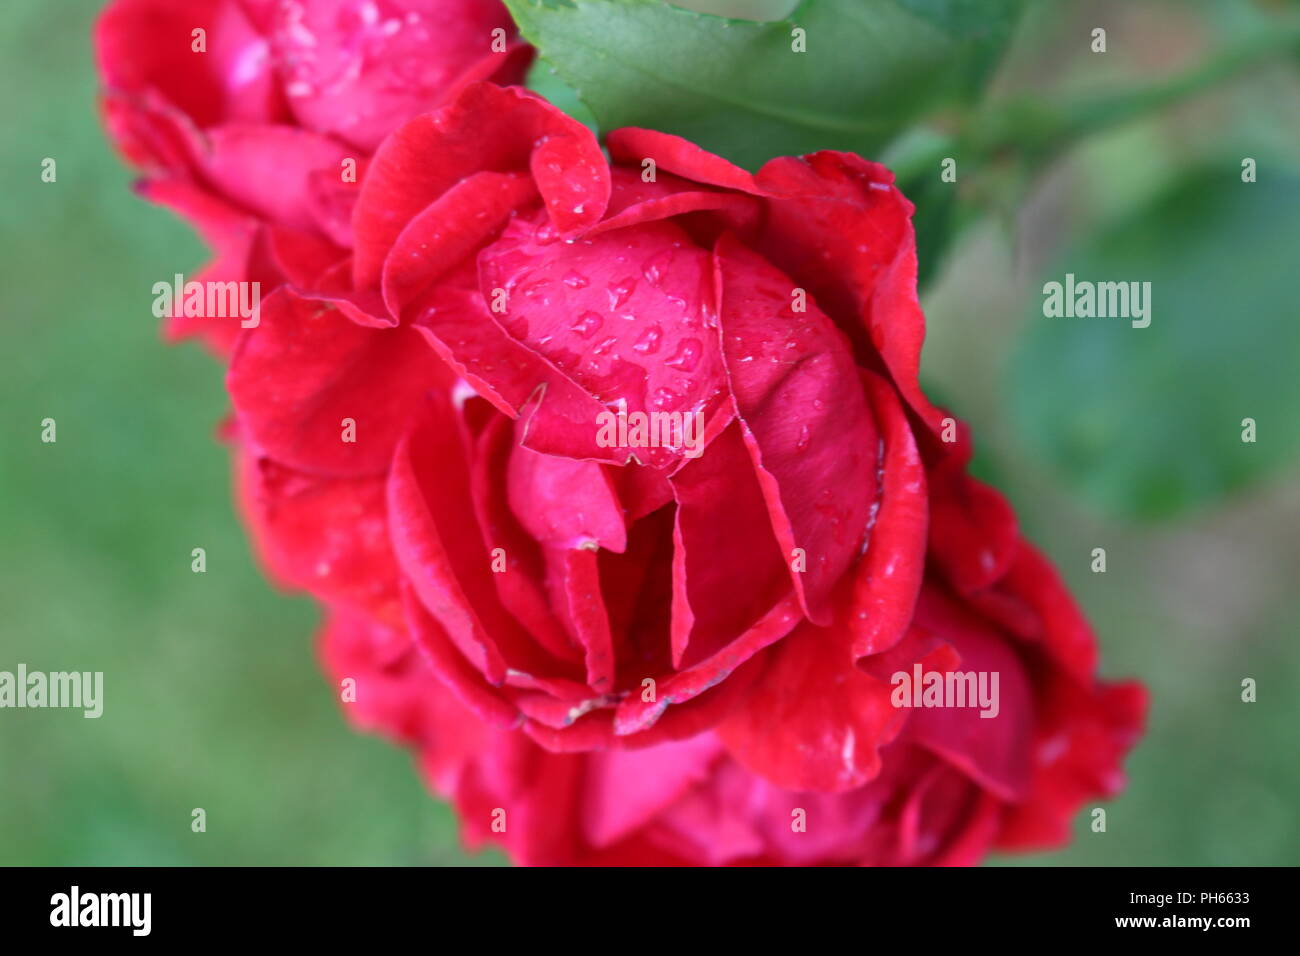 Raindrops on vibrant red roses - Stock Image